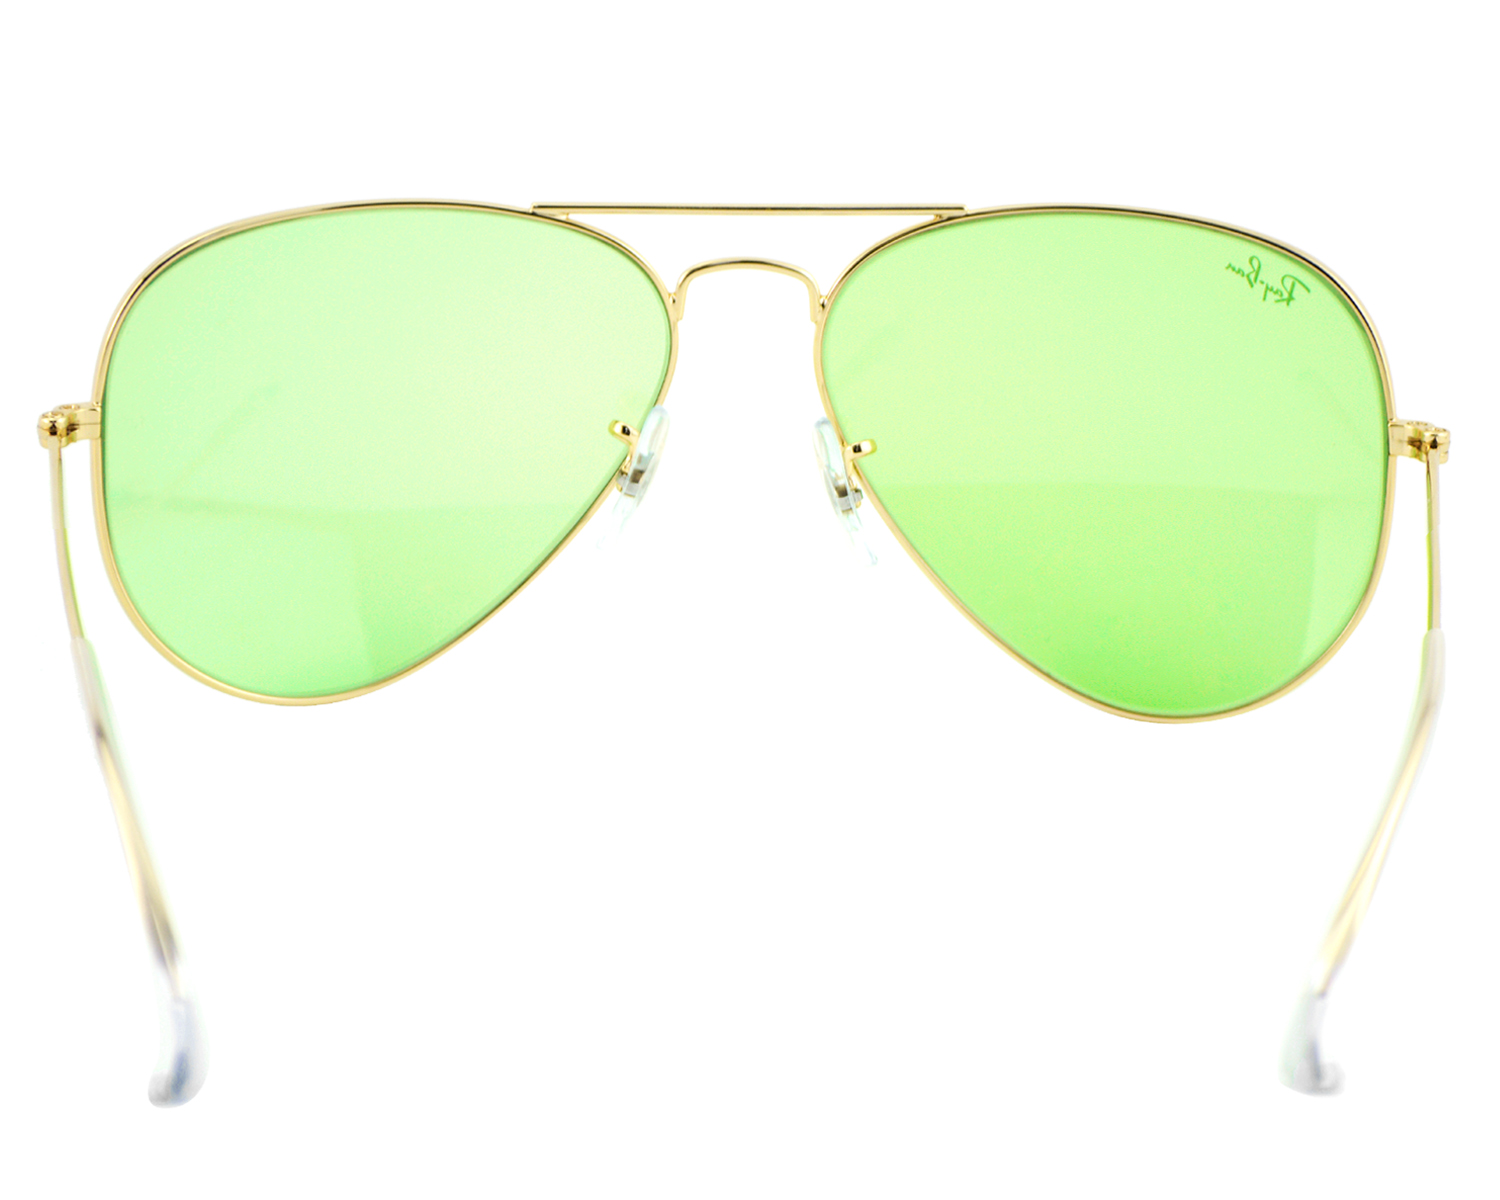 500f480ca29 Ray-Ban RB3025 Aviator Large Metal 001 14 Gold Frame  Light green Unisex  Sunglasses 58mm